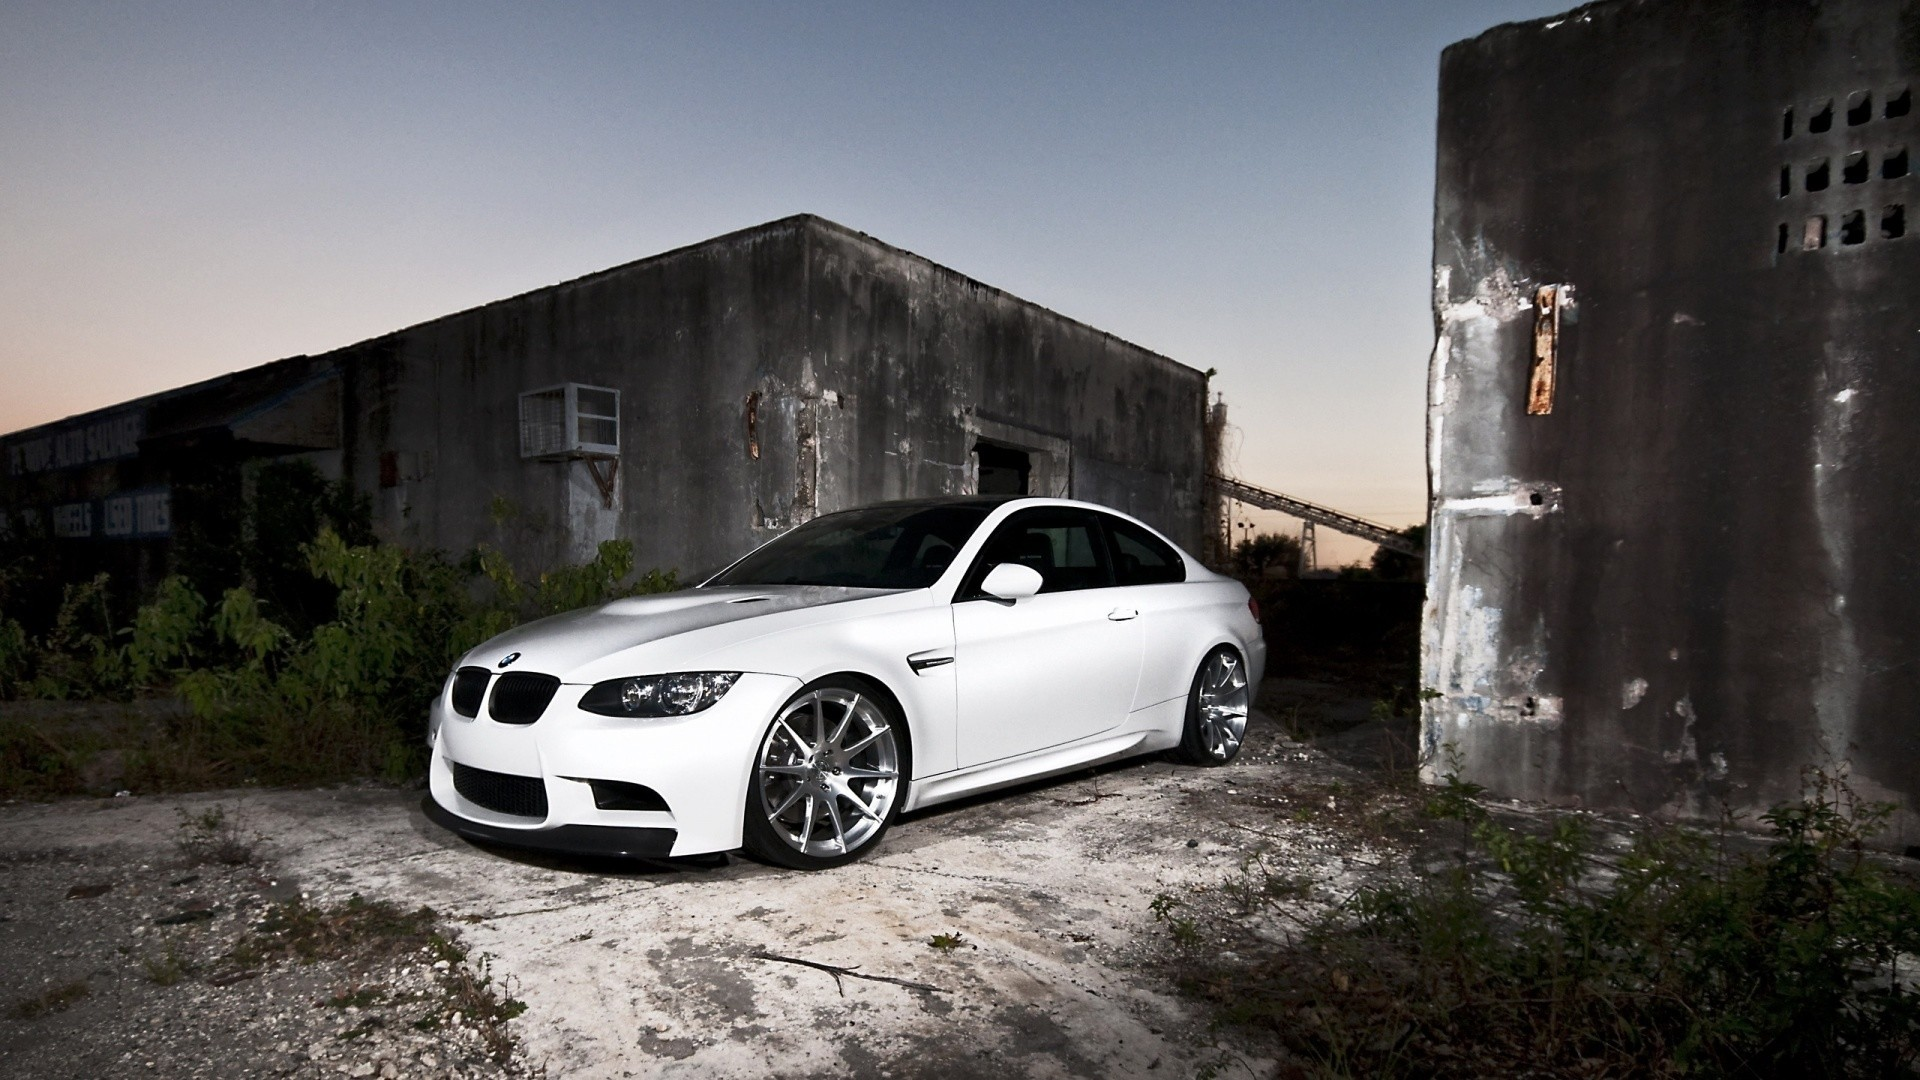 1920x1080 BMW M HD Wallpapers Backgrounds Wallpaper